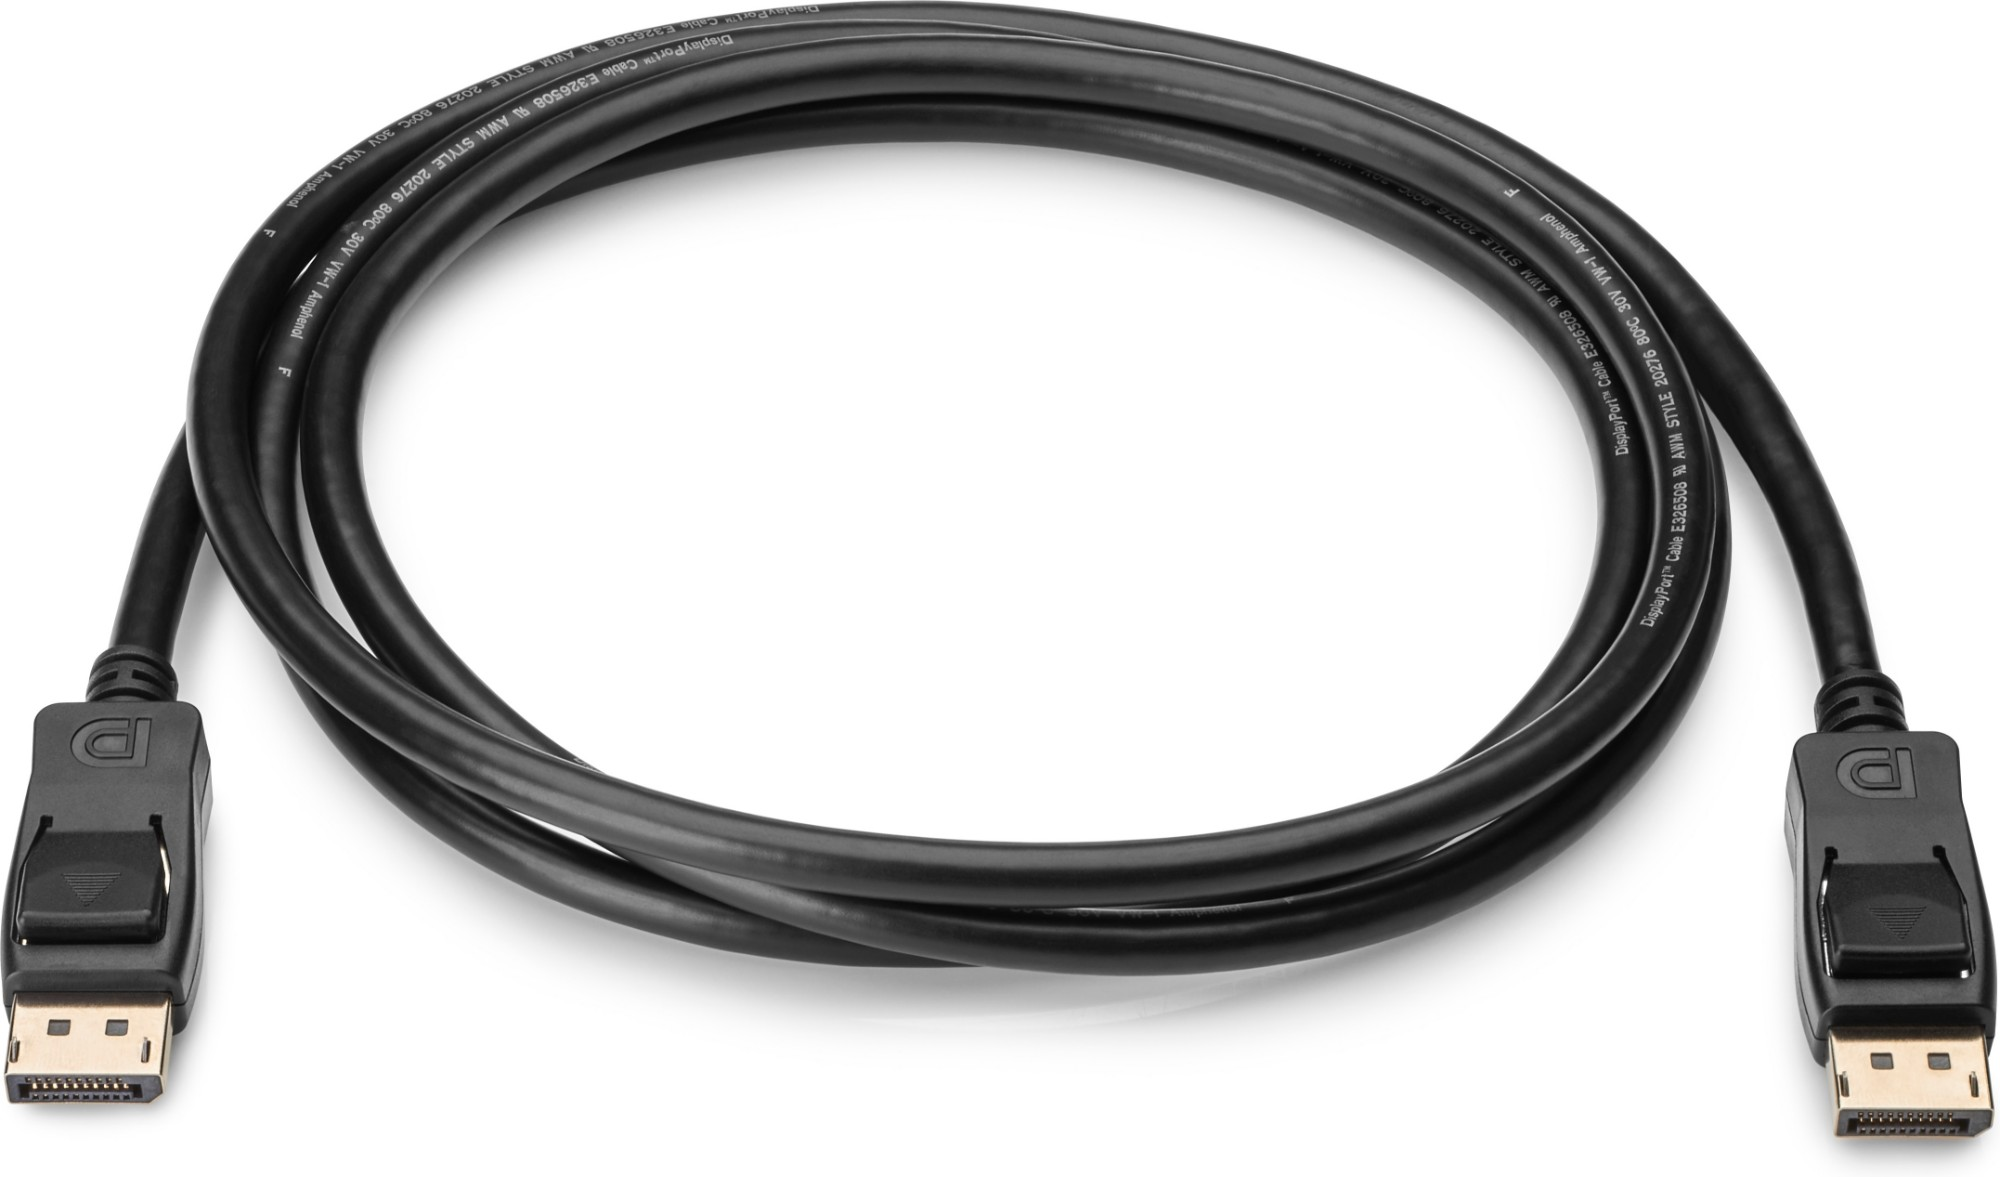 HP 700mm Cable Kit for CFD on RP9 (V7S63AA)